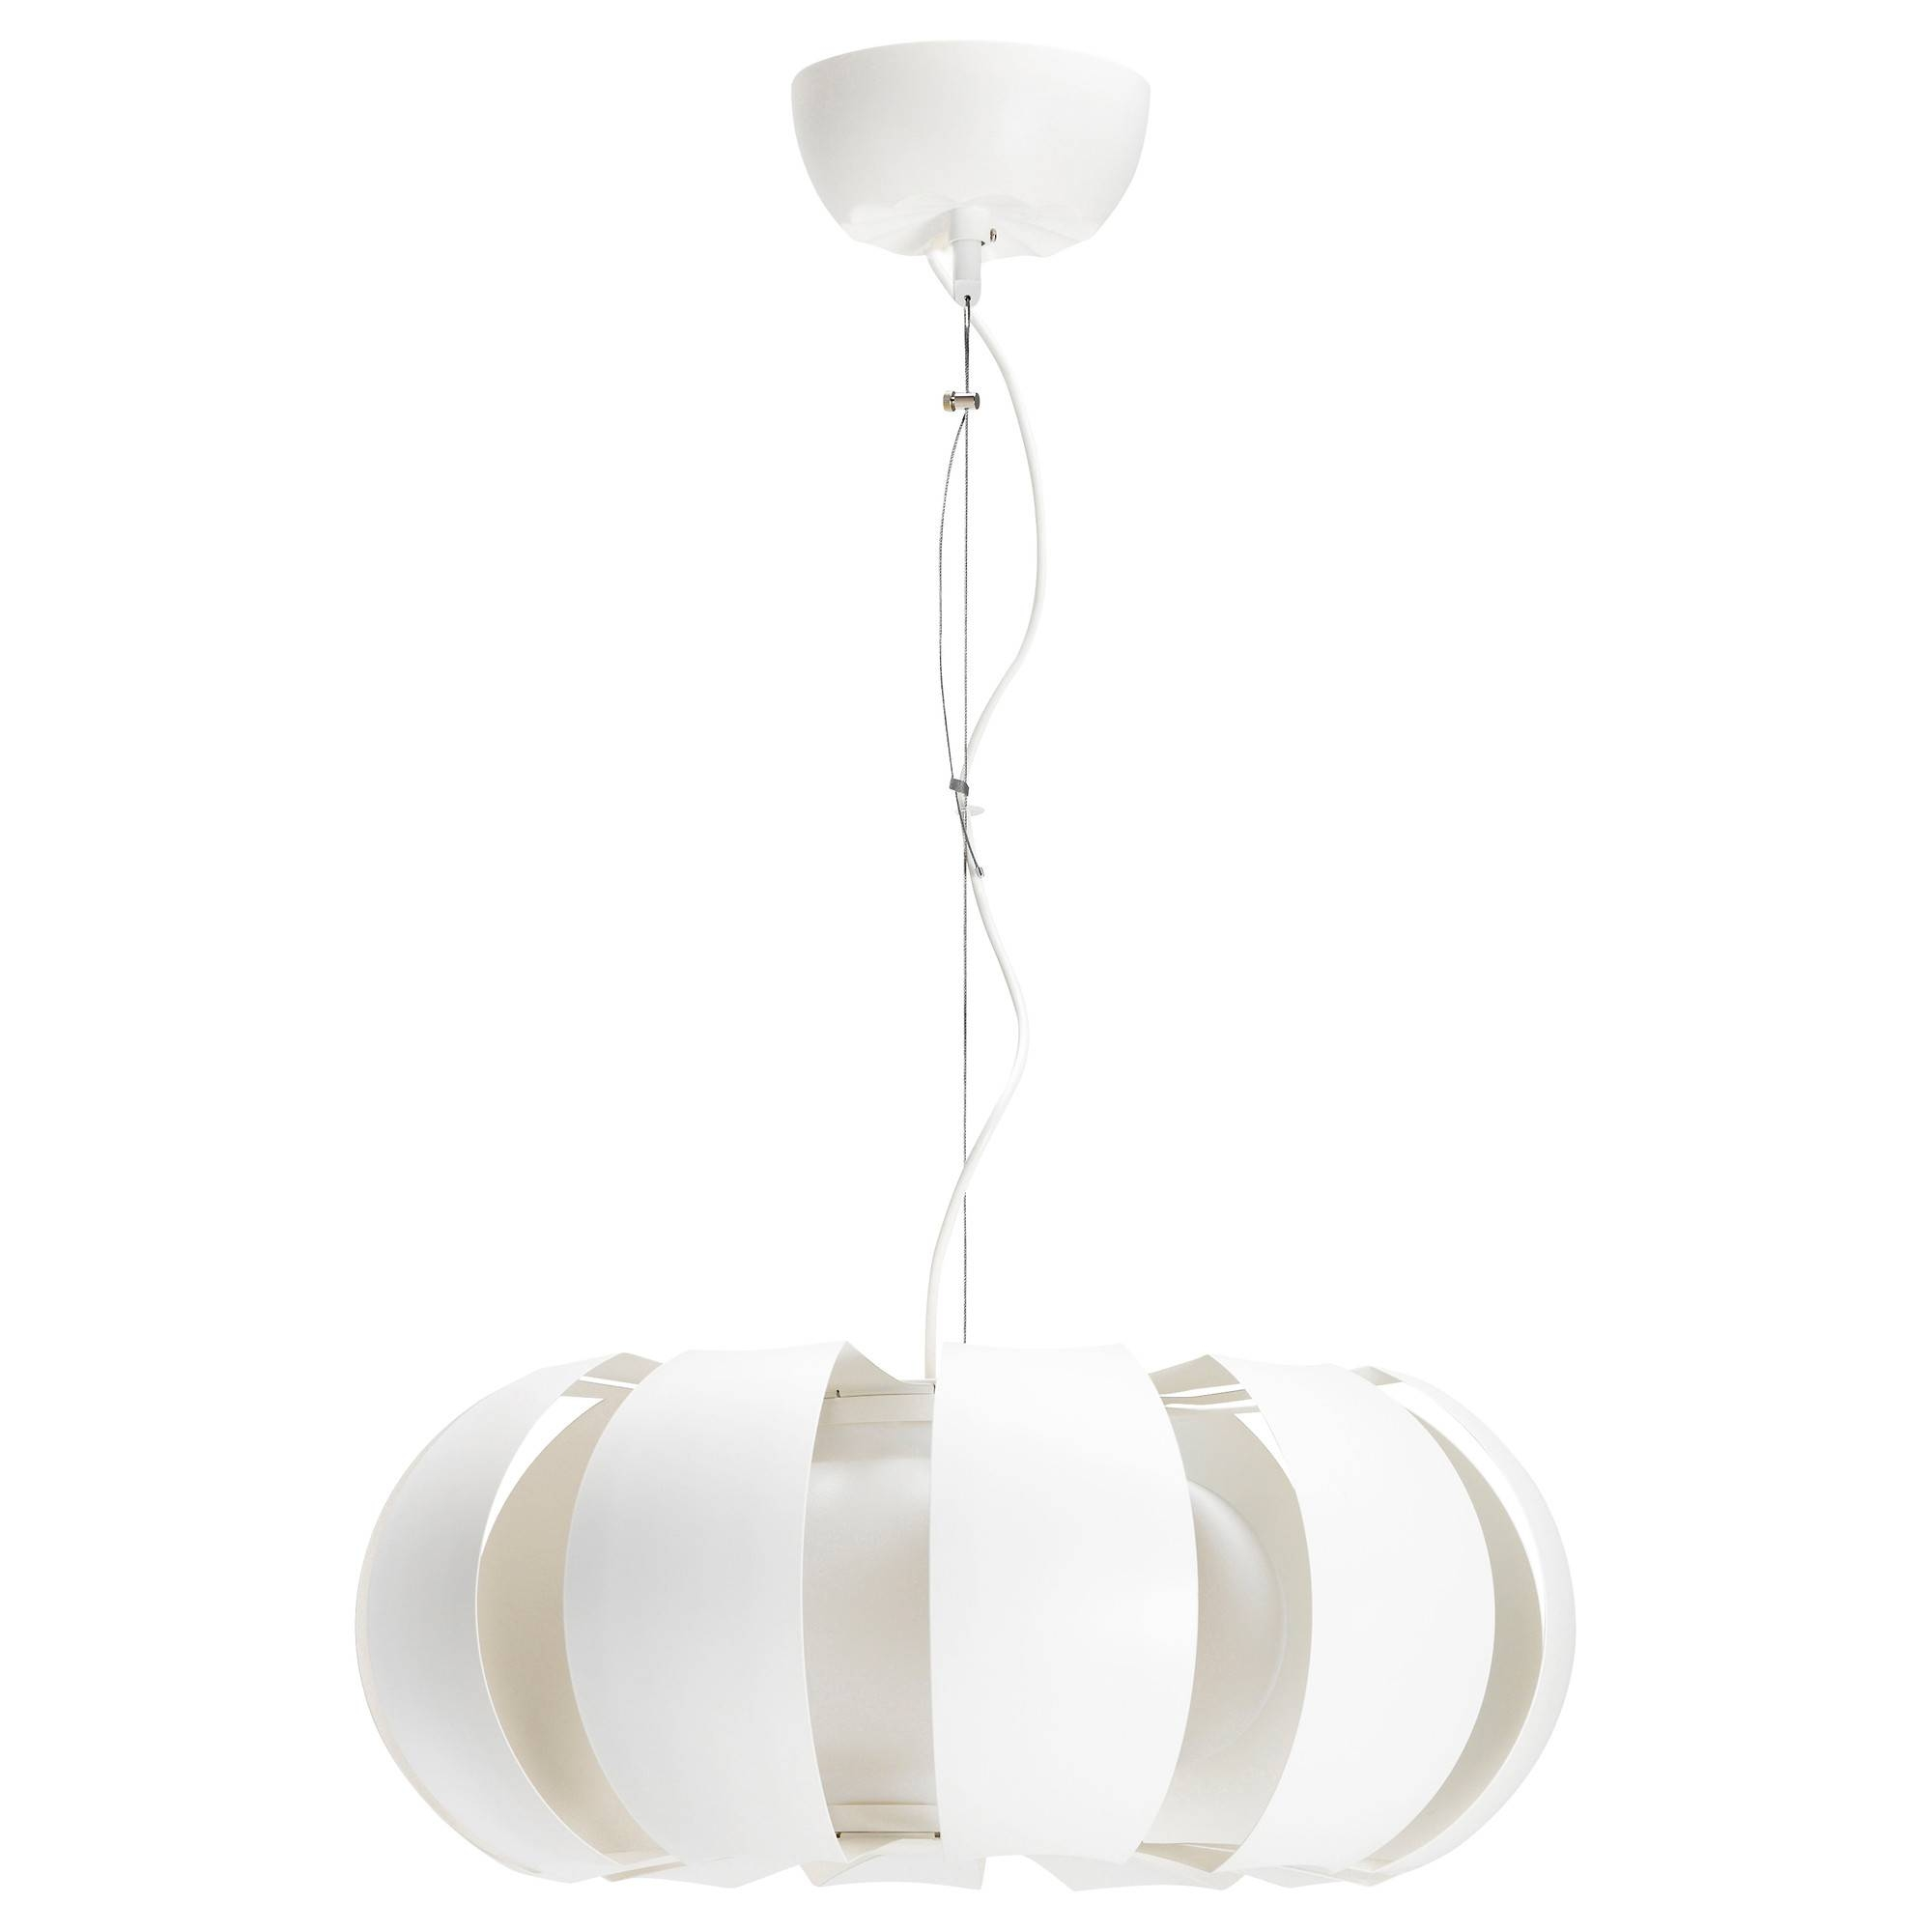 Stockholm Pendant Lamp - Ikea regarding Ikea Globe Pendant Lights (Image 15 of 15)